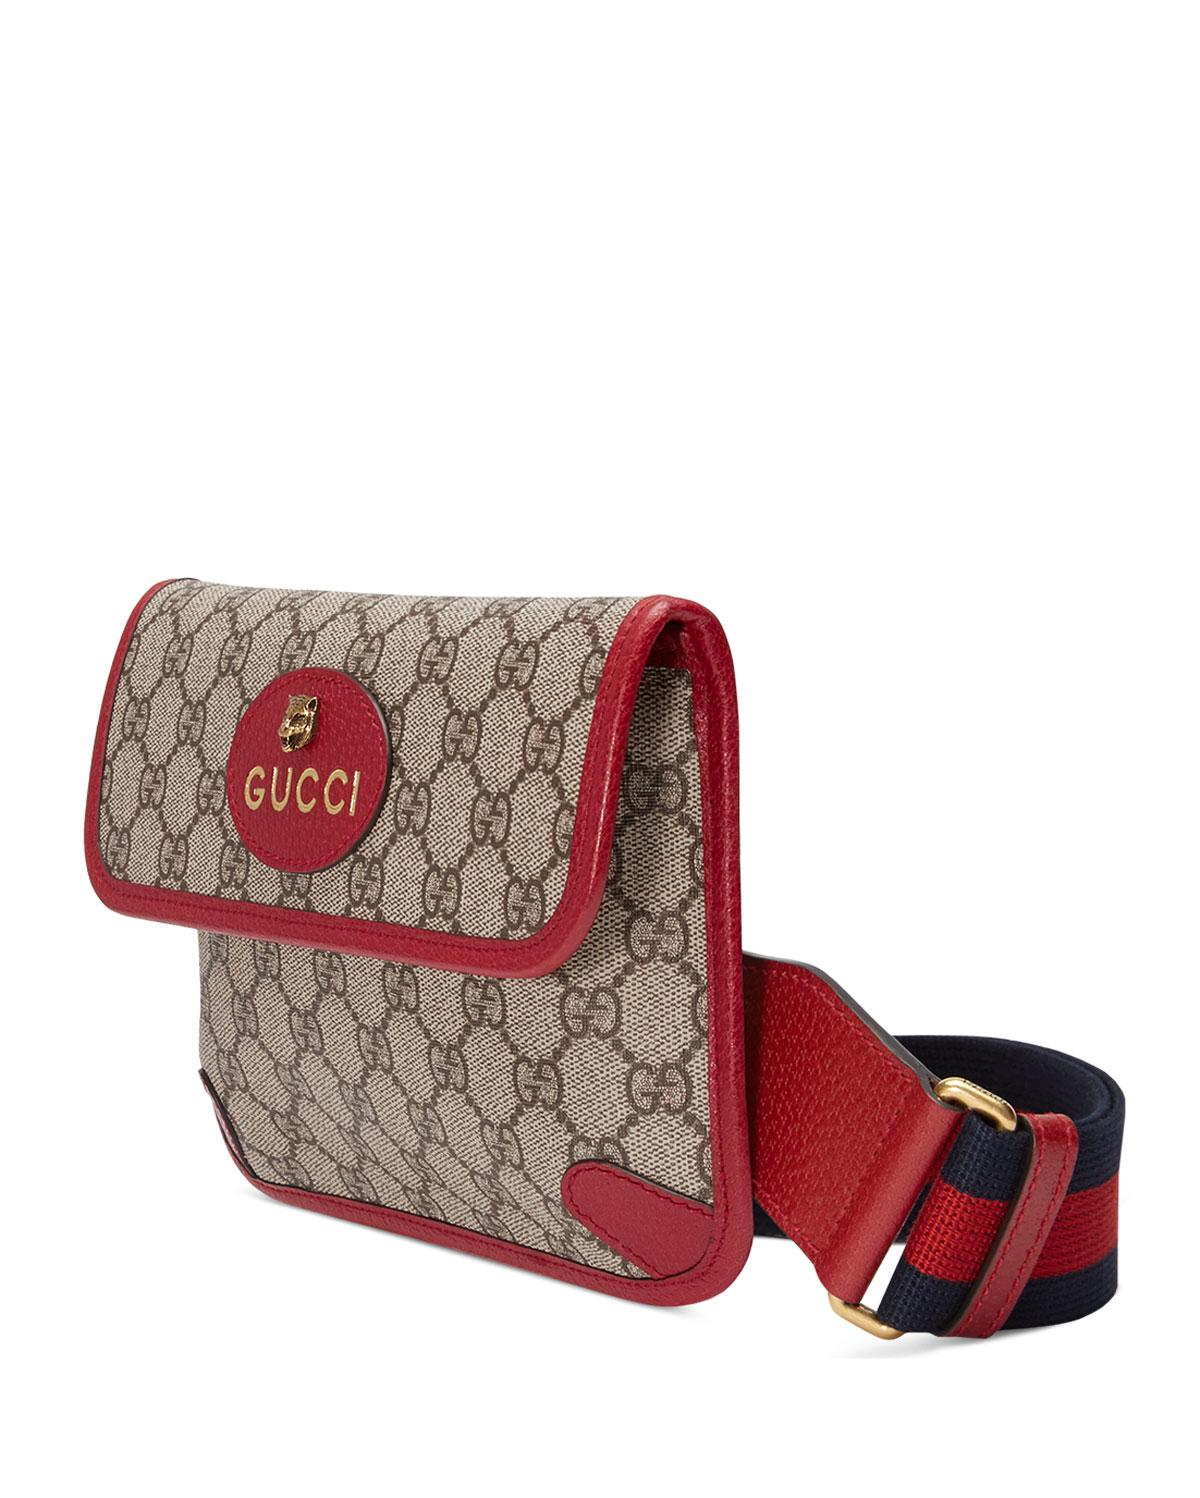 83590bc95a77 Gucci Totem Three-piece Shoulder Bag in Red - Lyst